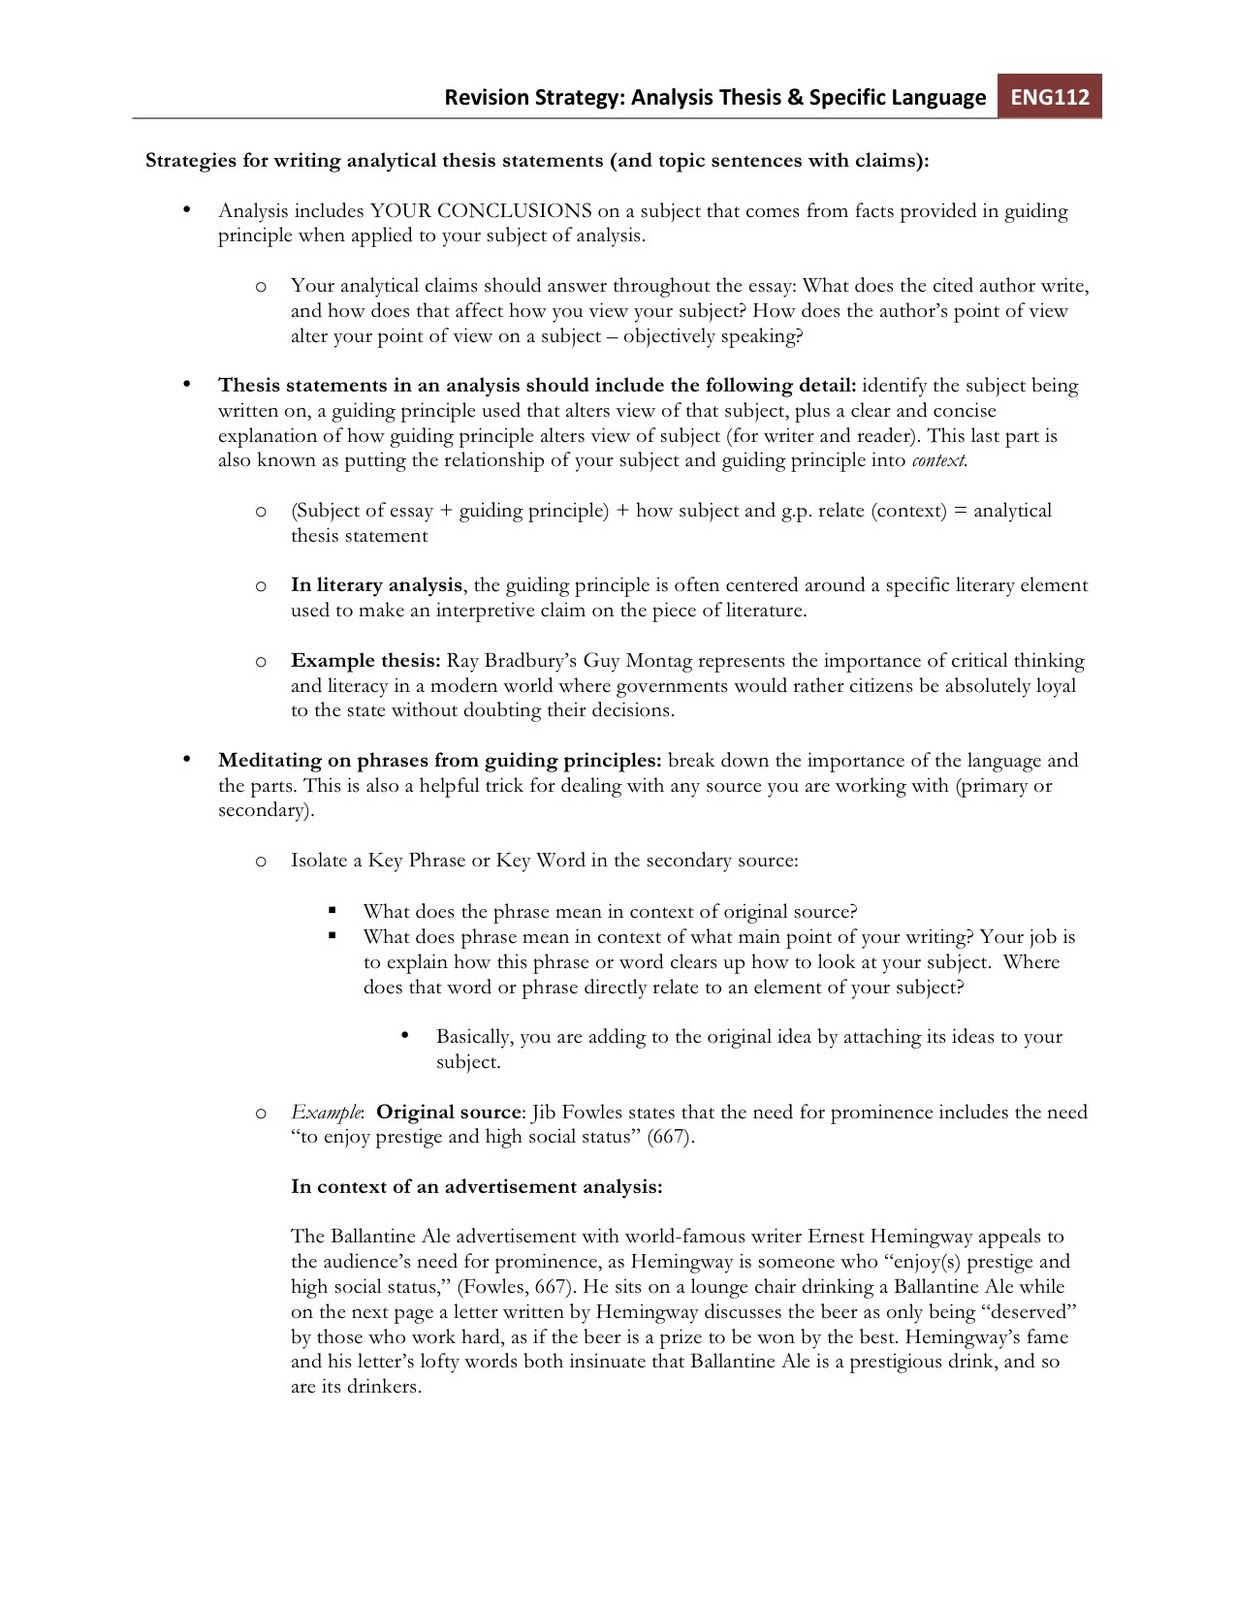 006 Strategiesforwritinganalyticalthesisstatements Essay Example Phenomenal Eslrs